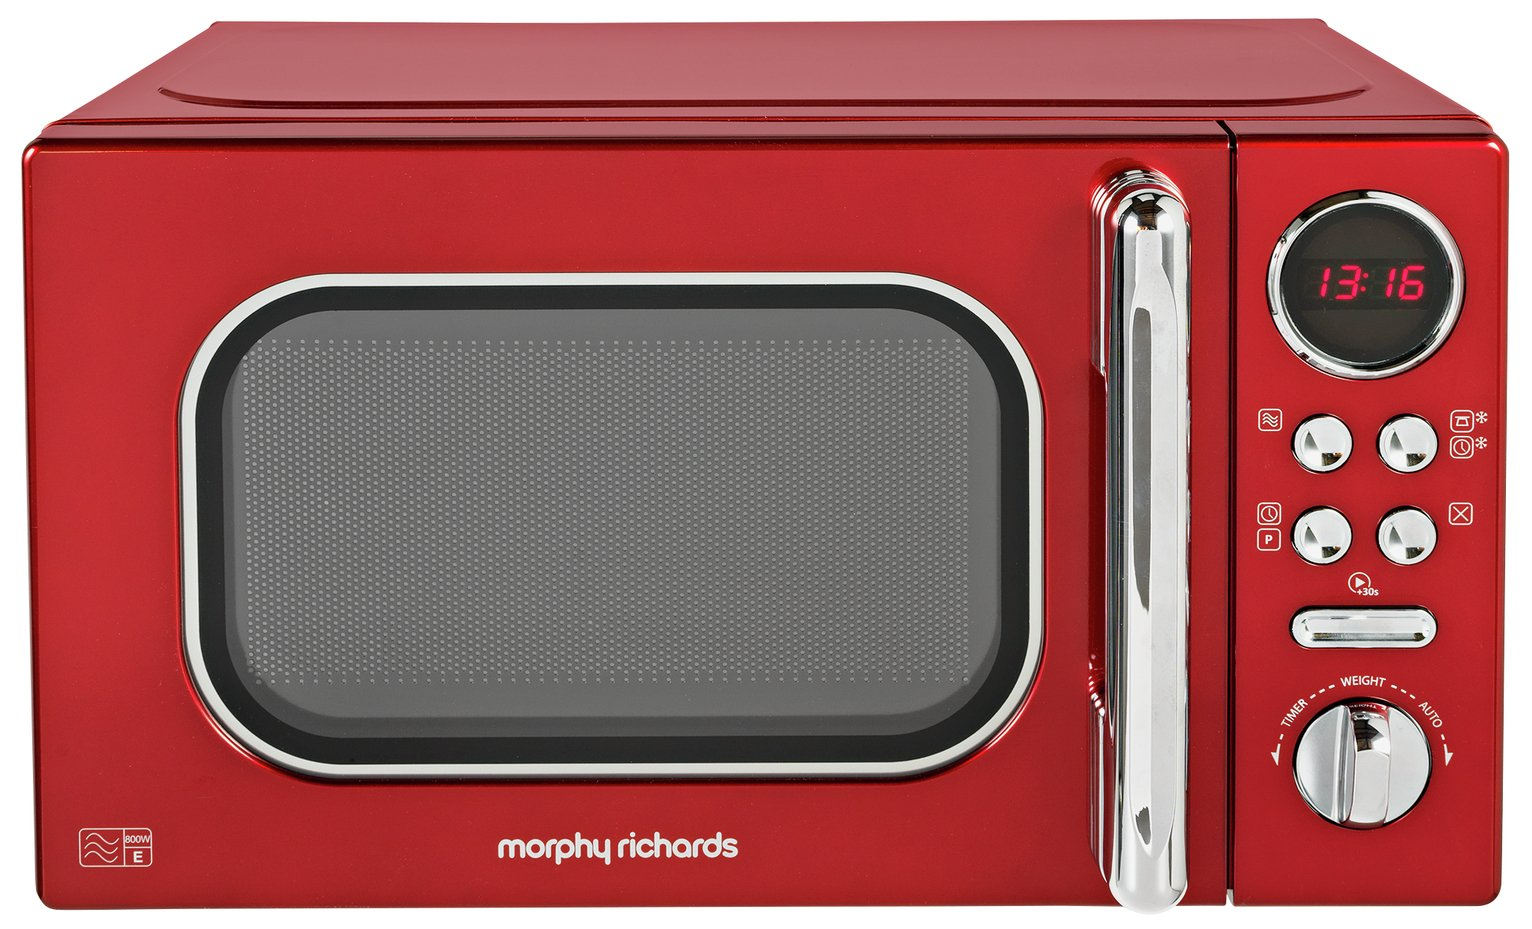 sharp 900w combination flatbed microwave r861 silver. morphy richards accents 800w standard microwave 511502 - red sharp 900w combination flatbed r861 silver s